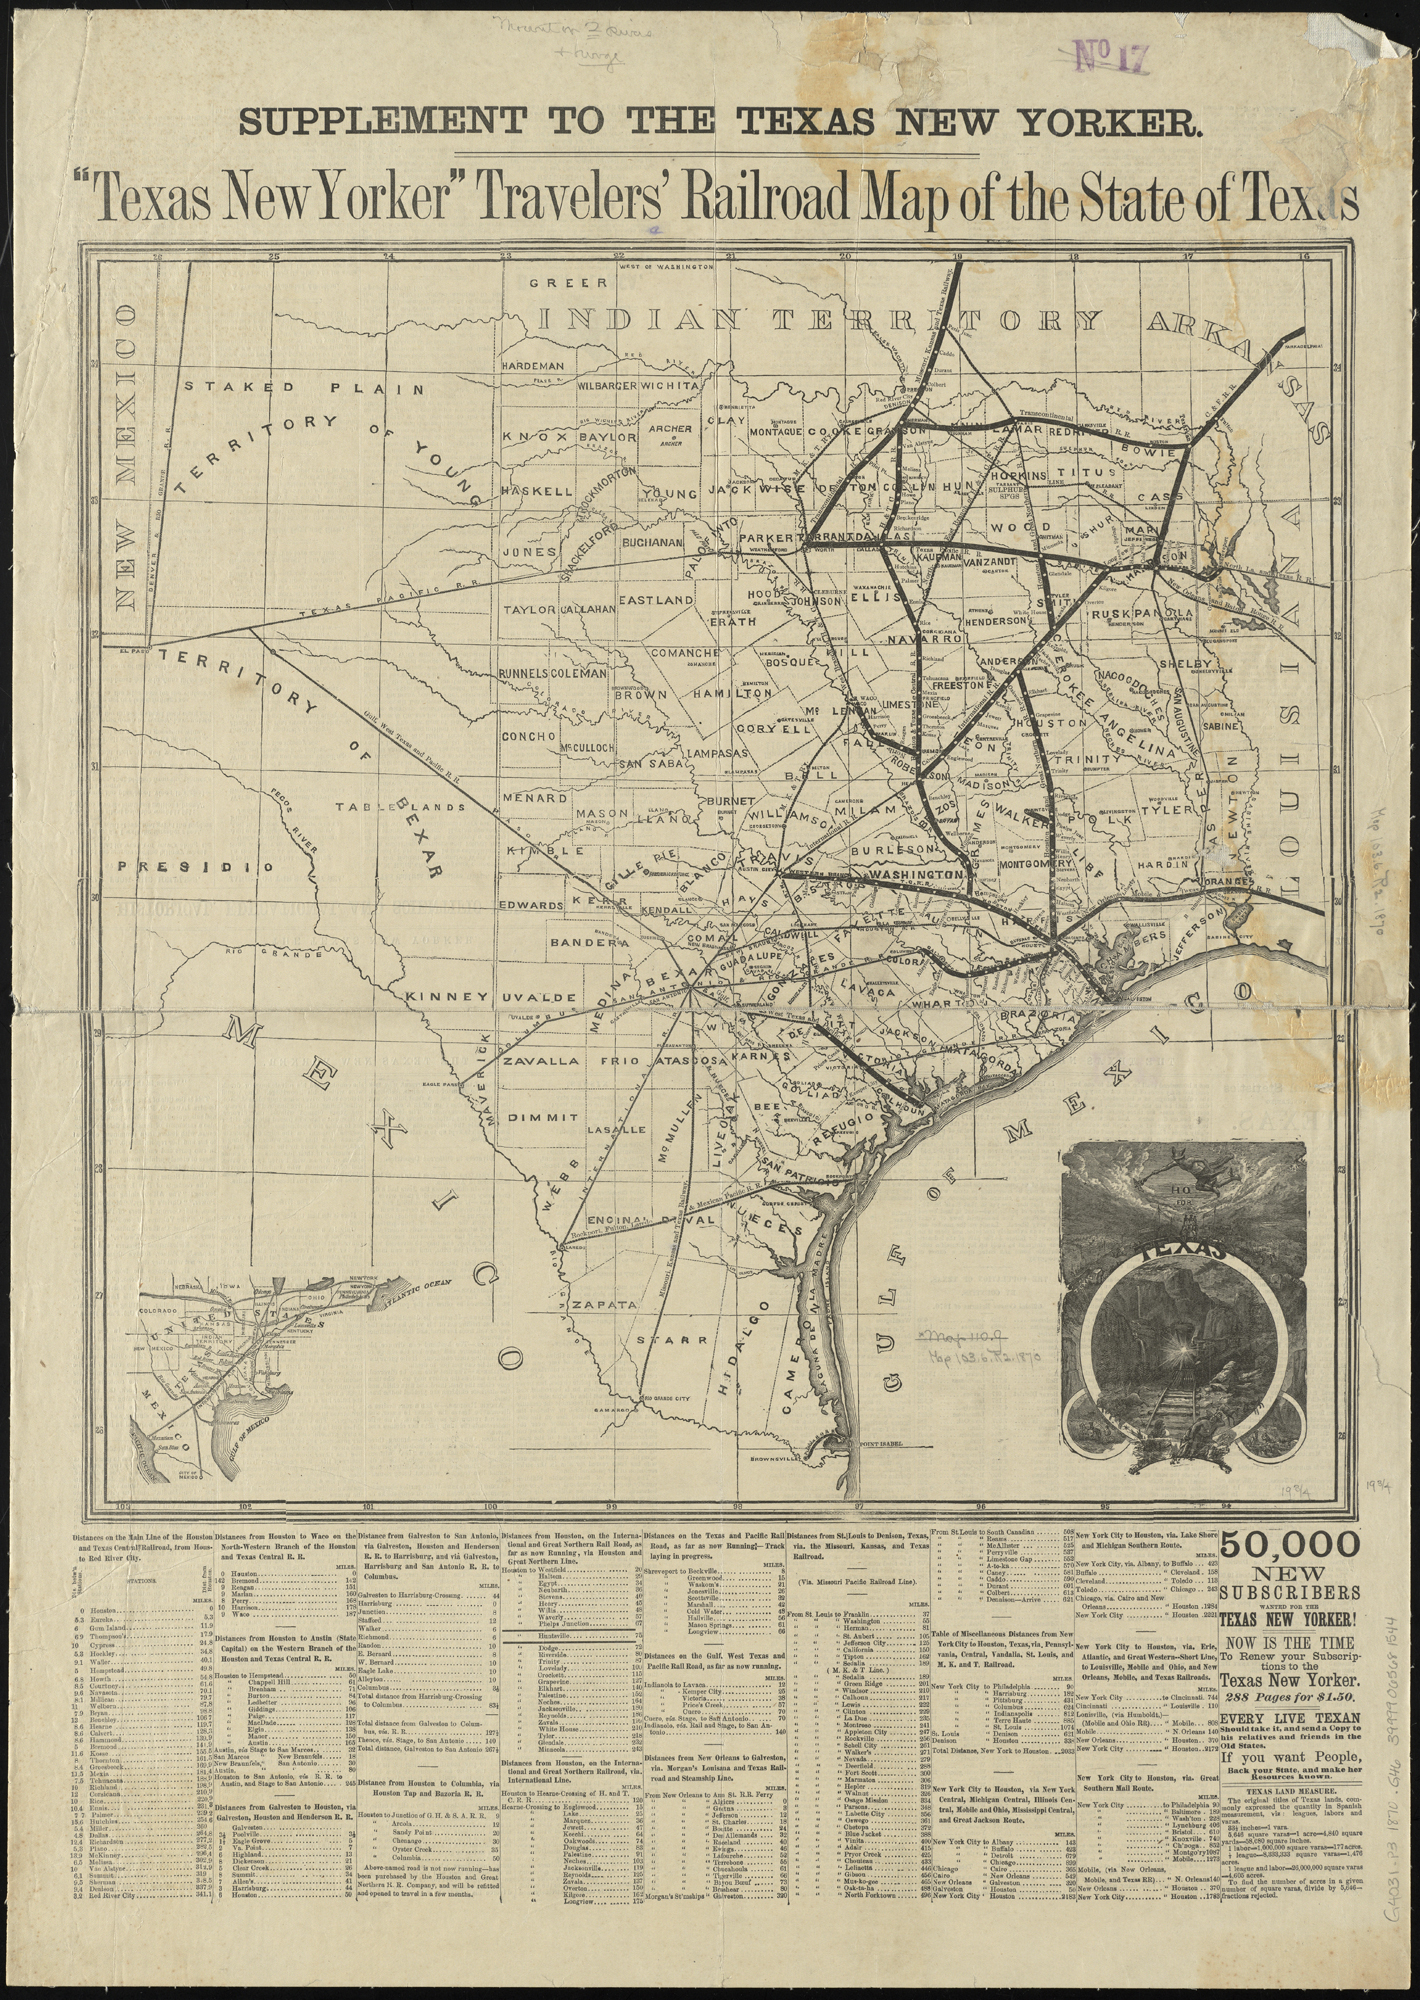 1870 Map Of Texas.File Texas New Yorker Travelers Railroad Map Of The State Of